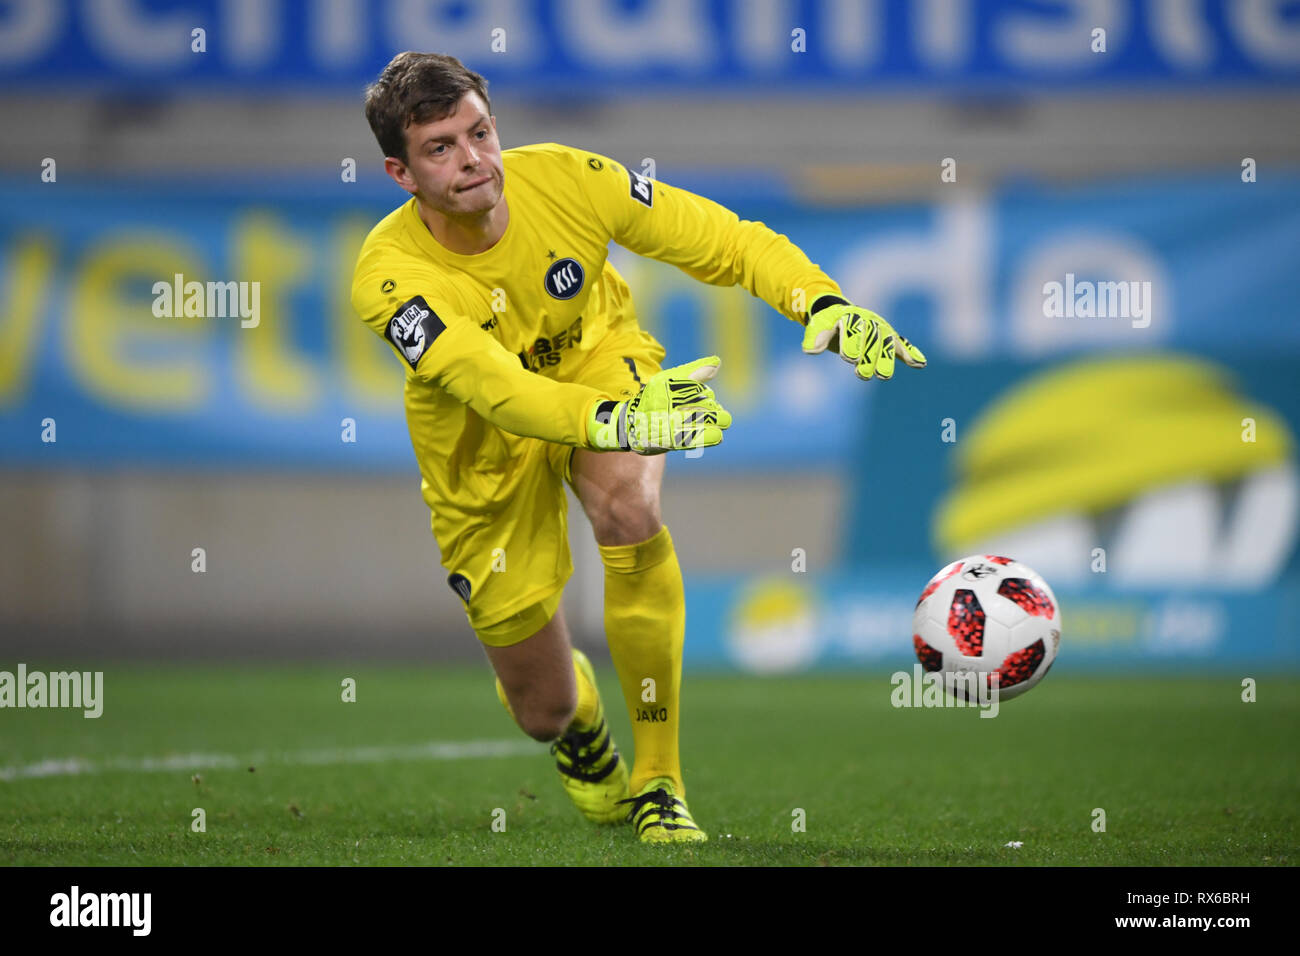 goalkeeper Benjamin Uphoff (KSC). GES / football / 3rd league: Krefelder football club Uerdingen - Karlsruher SC, 08.03.2019 Football / Soccer: 3rd League: KFC Uerdingen vs Karlsruher SC, Duisburg, March 8, 2019 | usage worldwide - Stock Image